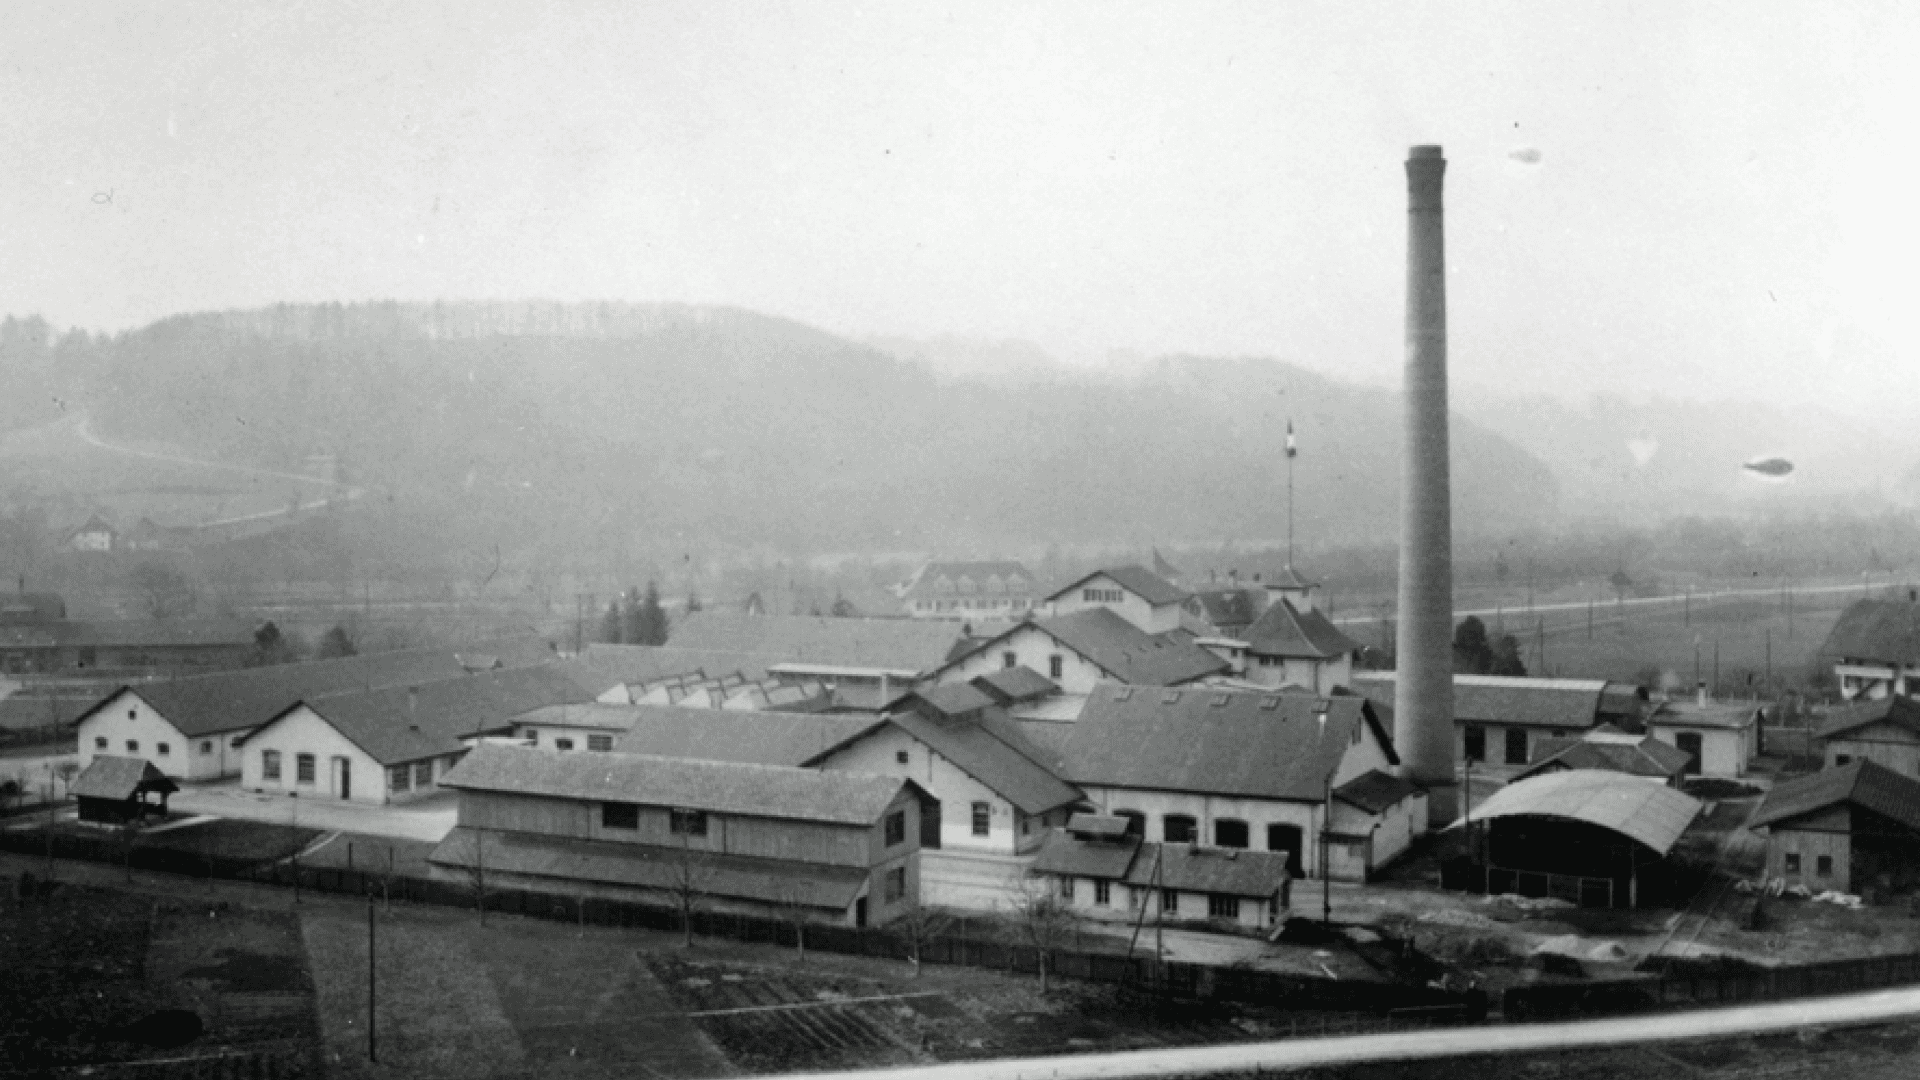 Ovomaltine factory in 1927